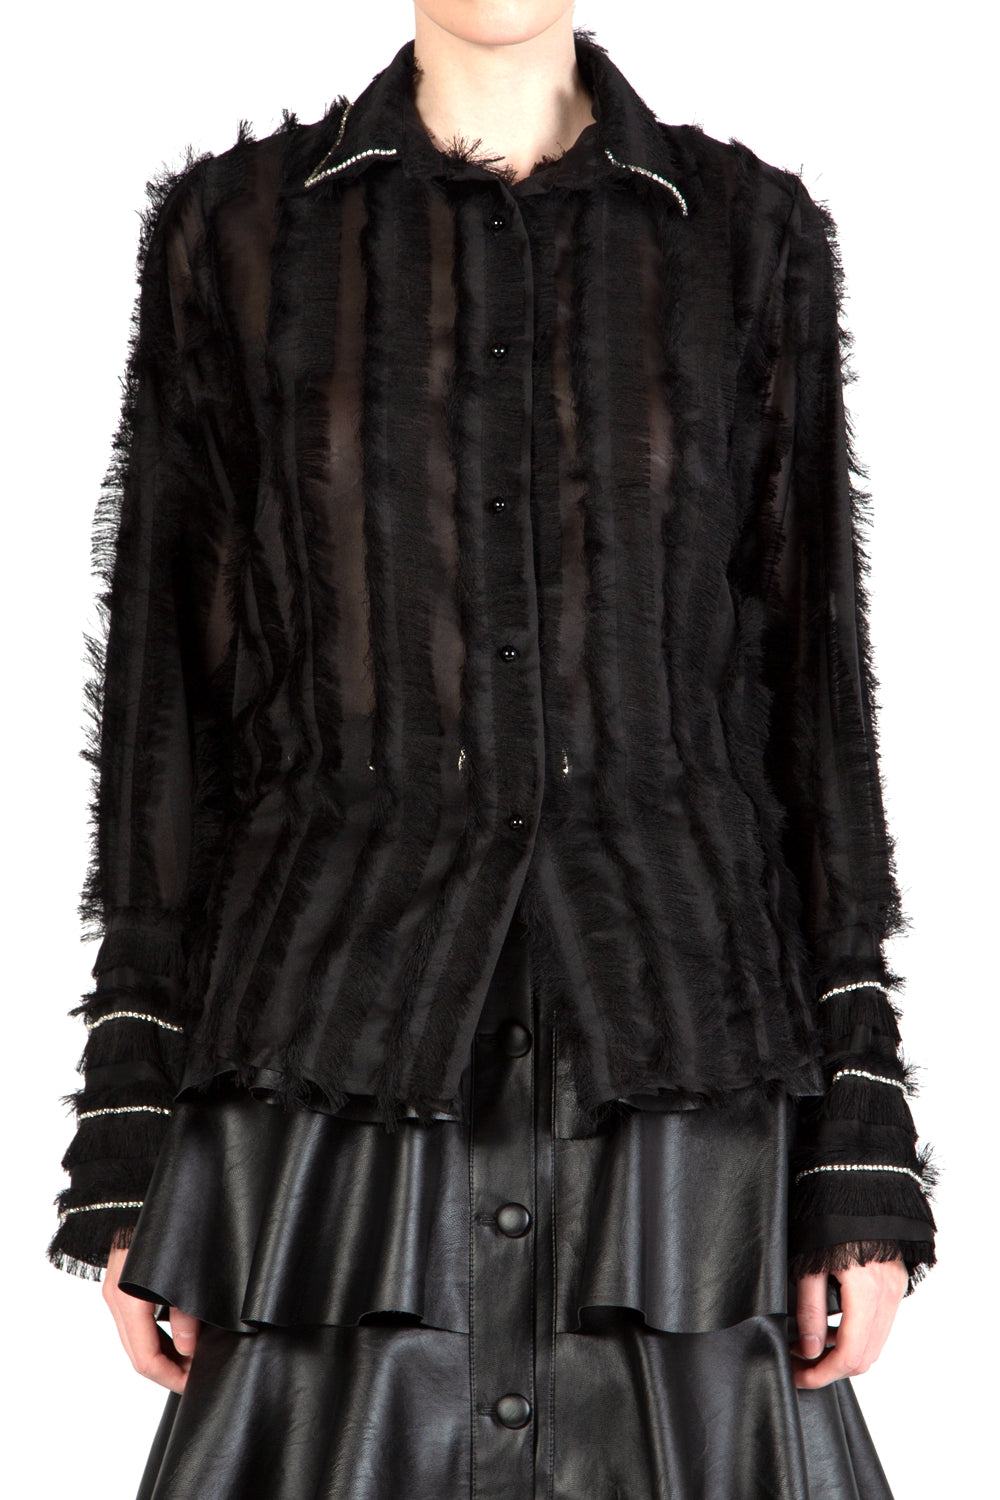 Black Fringe Blouse  Crystals beads Collar and Cuff